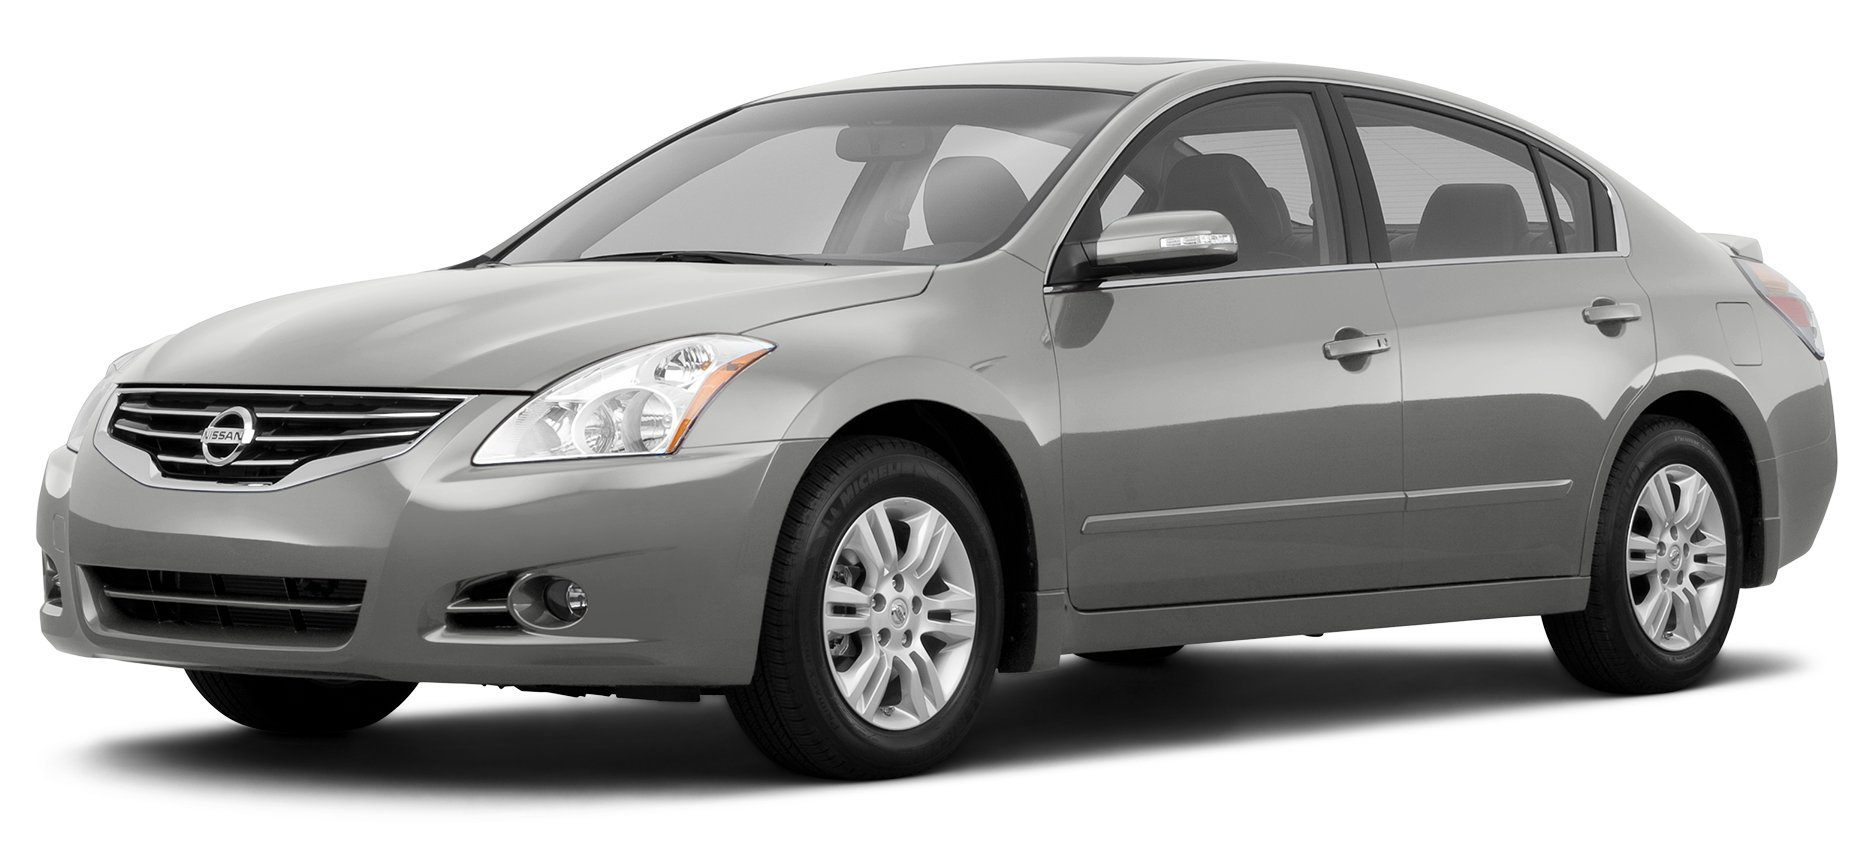 2011 Nissan Altima Reviews Images And Specs Vehicles Fuel Filter 25 4 Door Sedan Cylinder Cvt